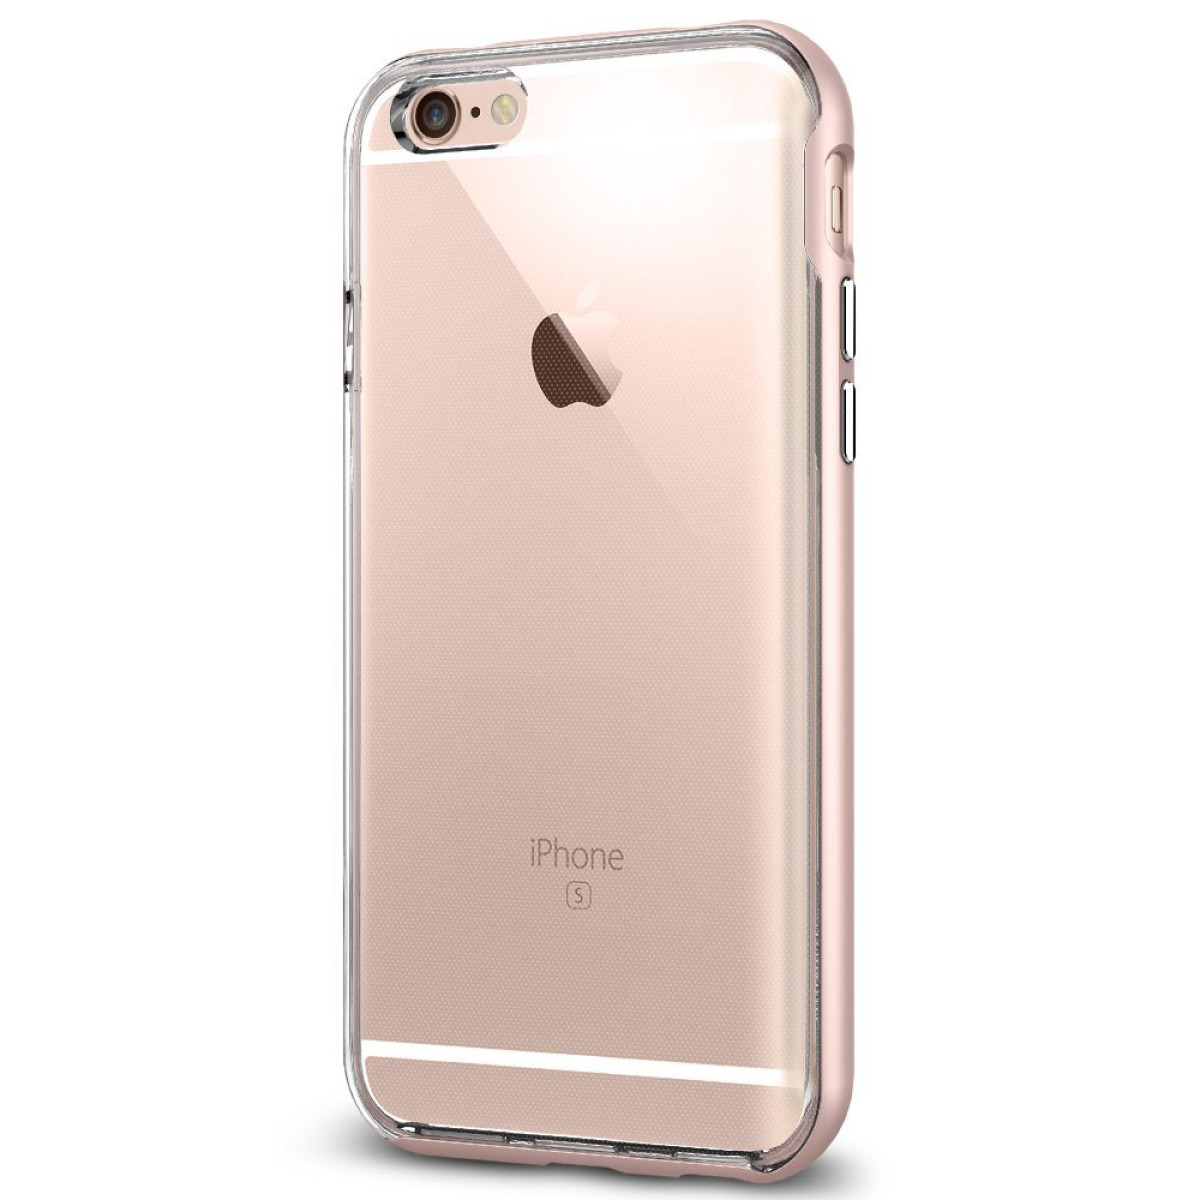 online store 32313 57dc0 Spigen Neo Hybrid EX iPhone 6S Case with Flexible Inner Bumper and  Reinforced Hard Frame for iPhone 6S / iPhone 6 - Rose Gold